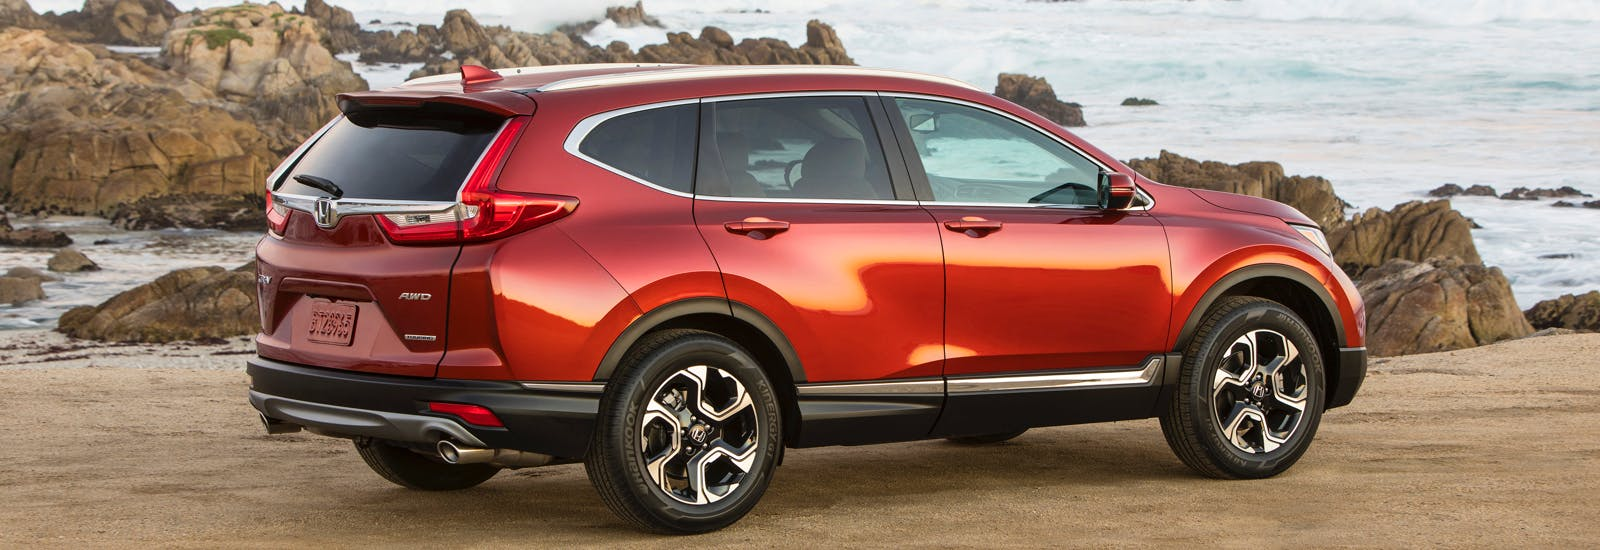 2017 honda cr v reviews and rating motor trend autos post for Honda crv price